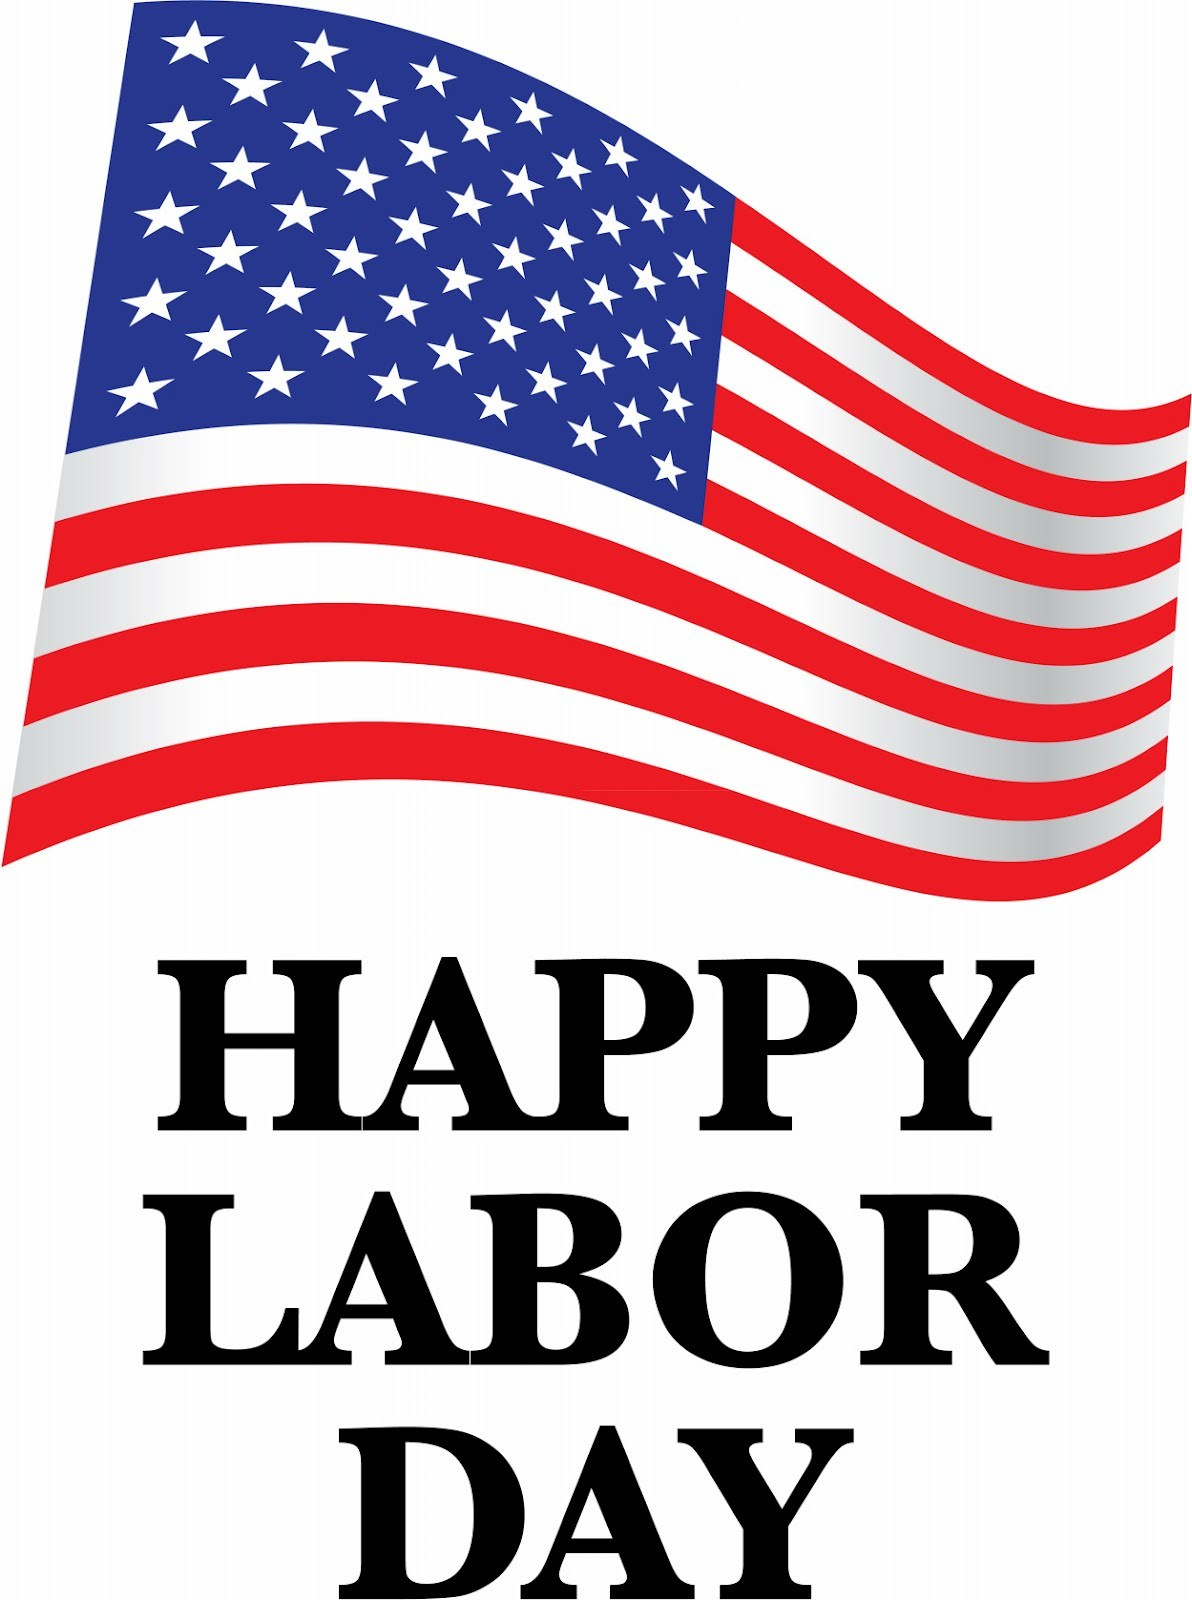 Labor day 2017 clipart image library download Labor Day 2015 Clipart | Free download best Labor Day 2015 Clipart ... image library download